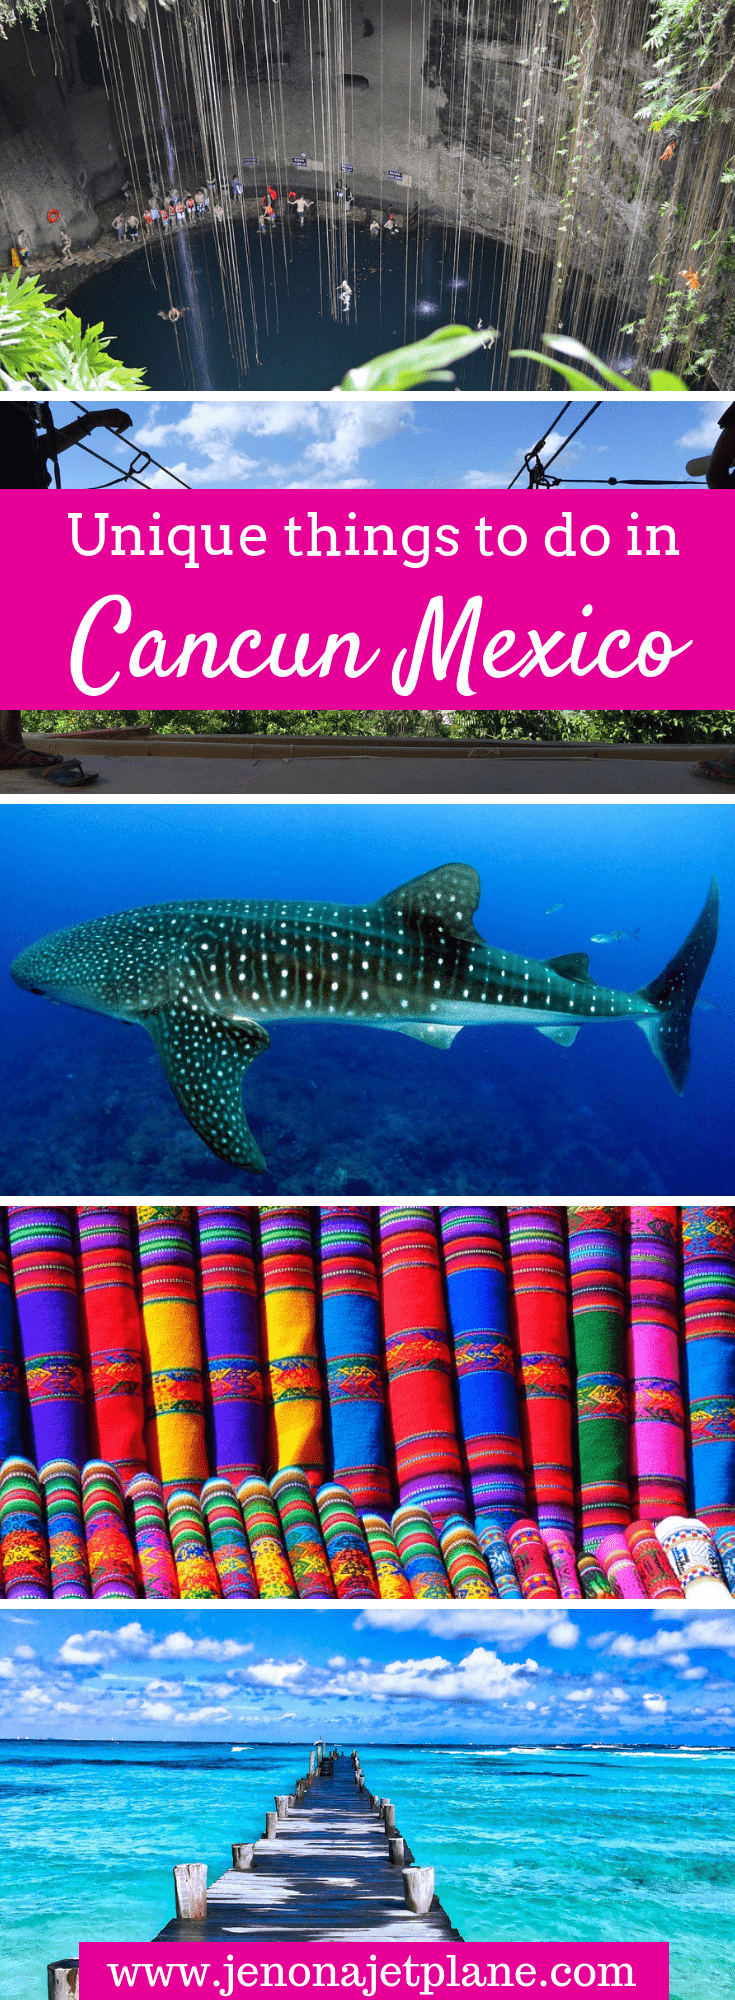 Looking for unique things to do in Cancun, Mexico away from the hotel strip? From swimming with whale sharks to seeing pink rivers on a day trip to Las Coloradas, here are 9 unforgettable adventures in Cancun you can't miss. Save to your travel board for future reference. #cancun #cancunmexico #mexicotravel #thingstodoinCancun #adventuretravel #bucketlist